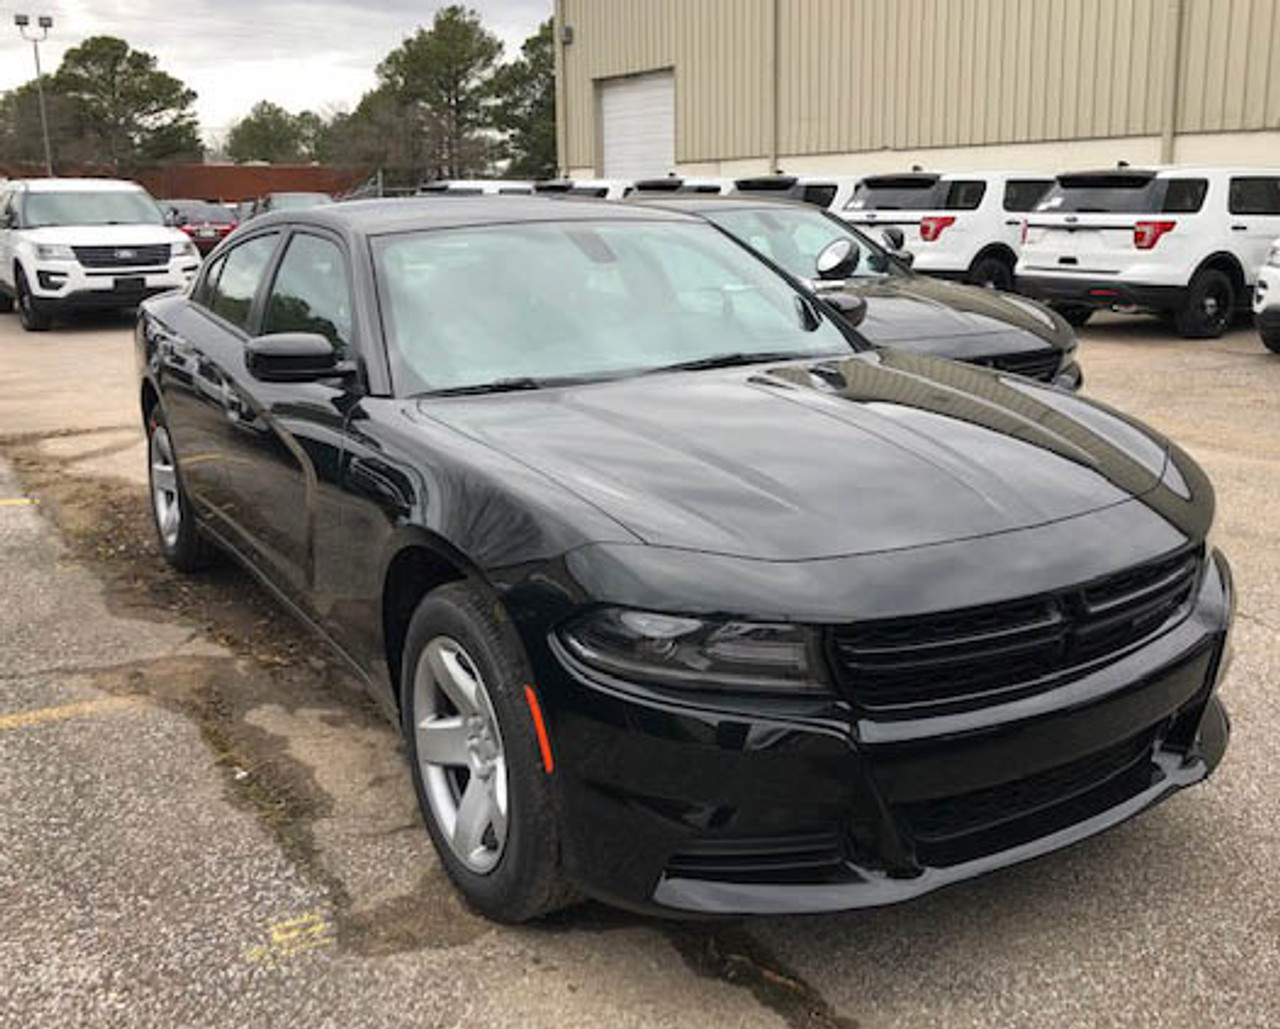 Used 2018 Black Dodge Charger HEMI AWD ready to be built as a Marked Patrol Package Police Pursuit Car,  choose any color LED Lights, + Delivery, with 55,000 miles on it